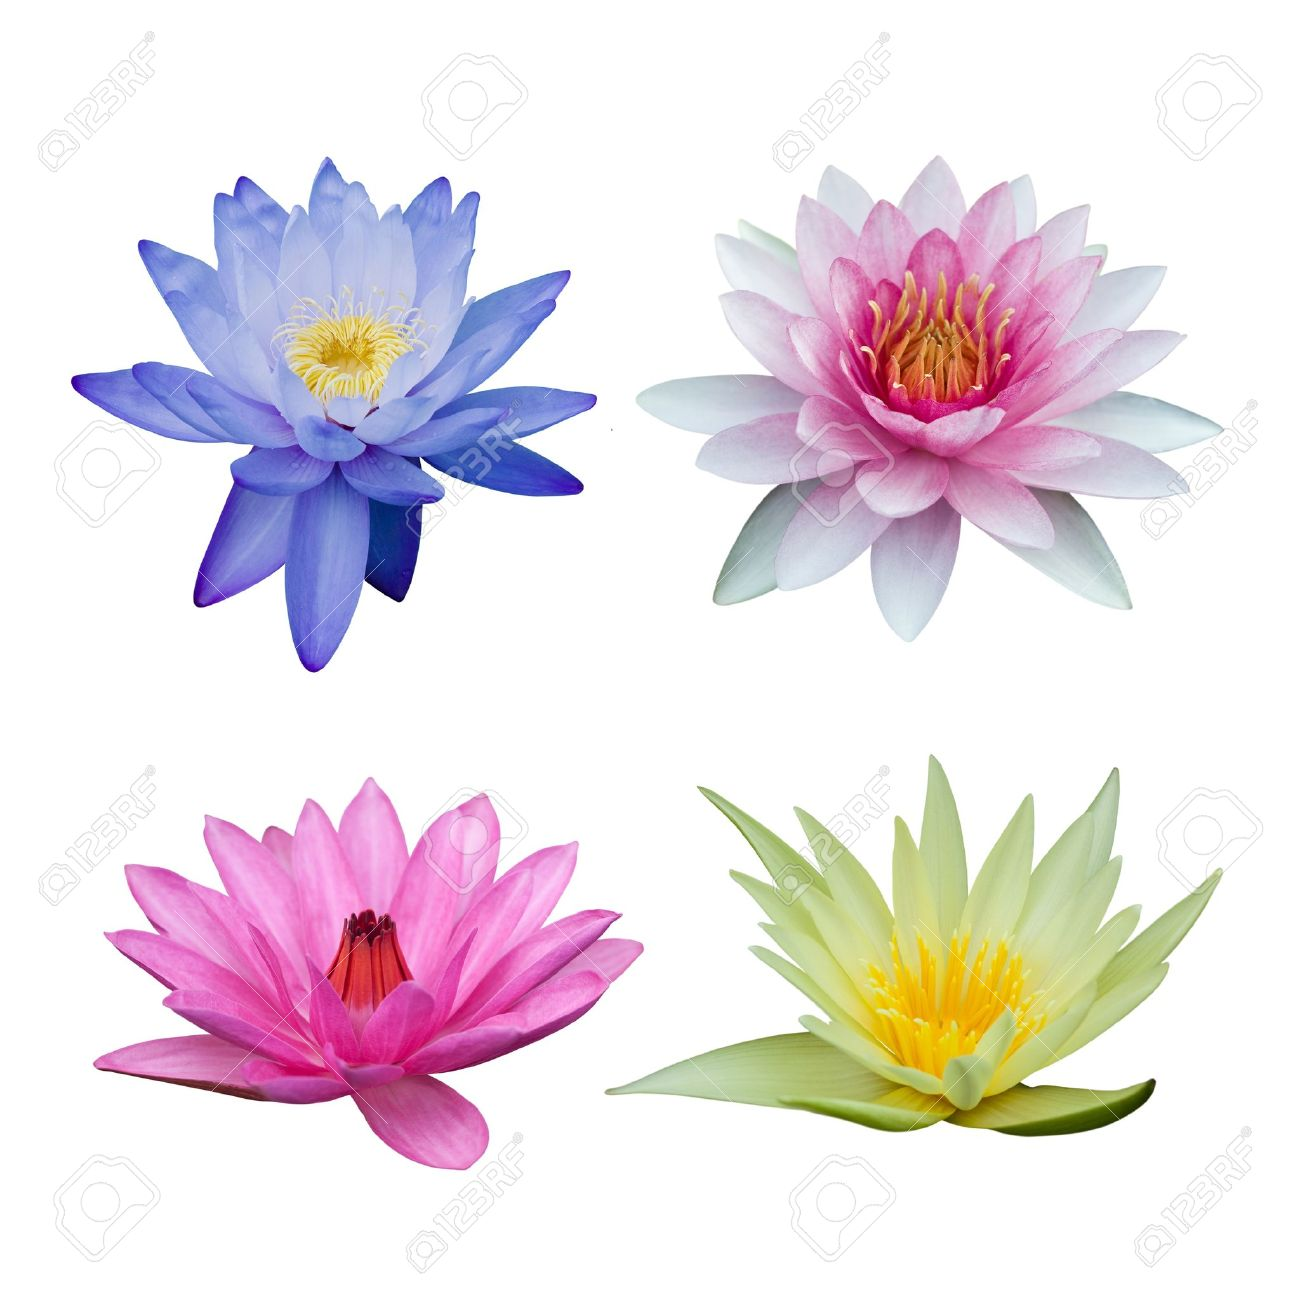 Water lily set isolated on white Stock Photo - 9667898